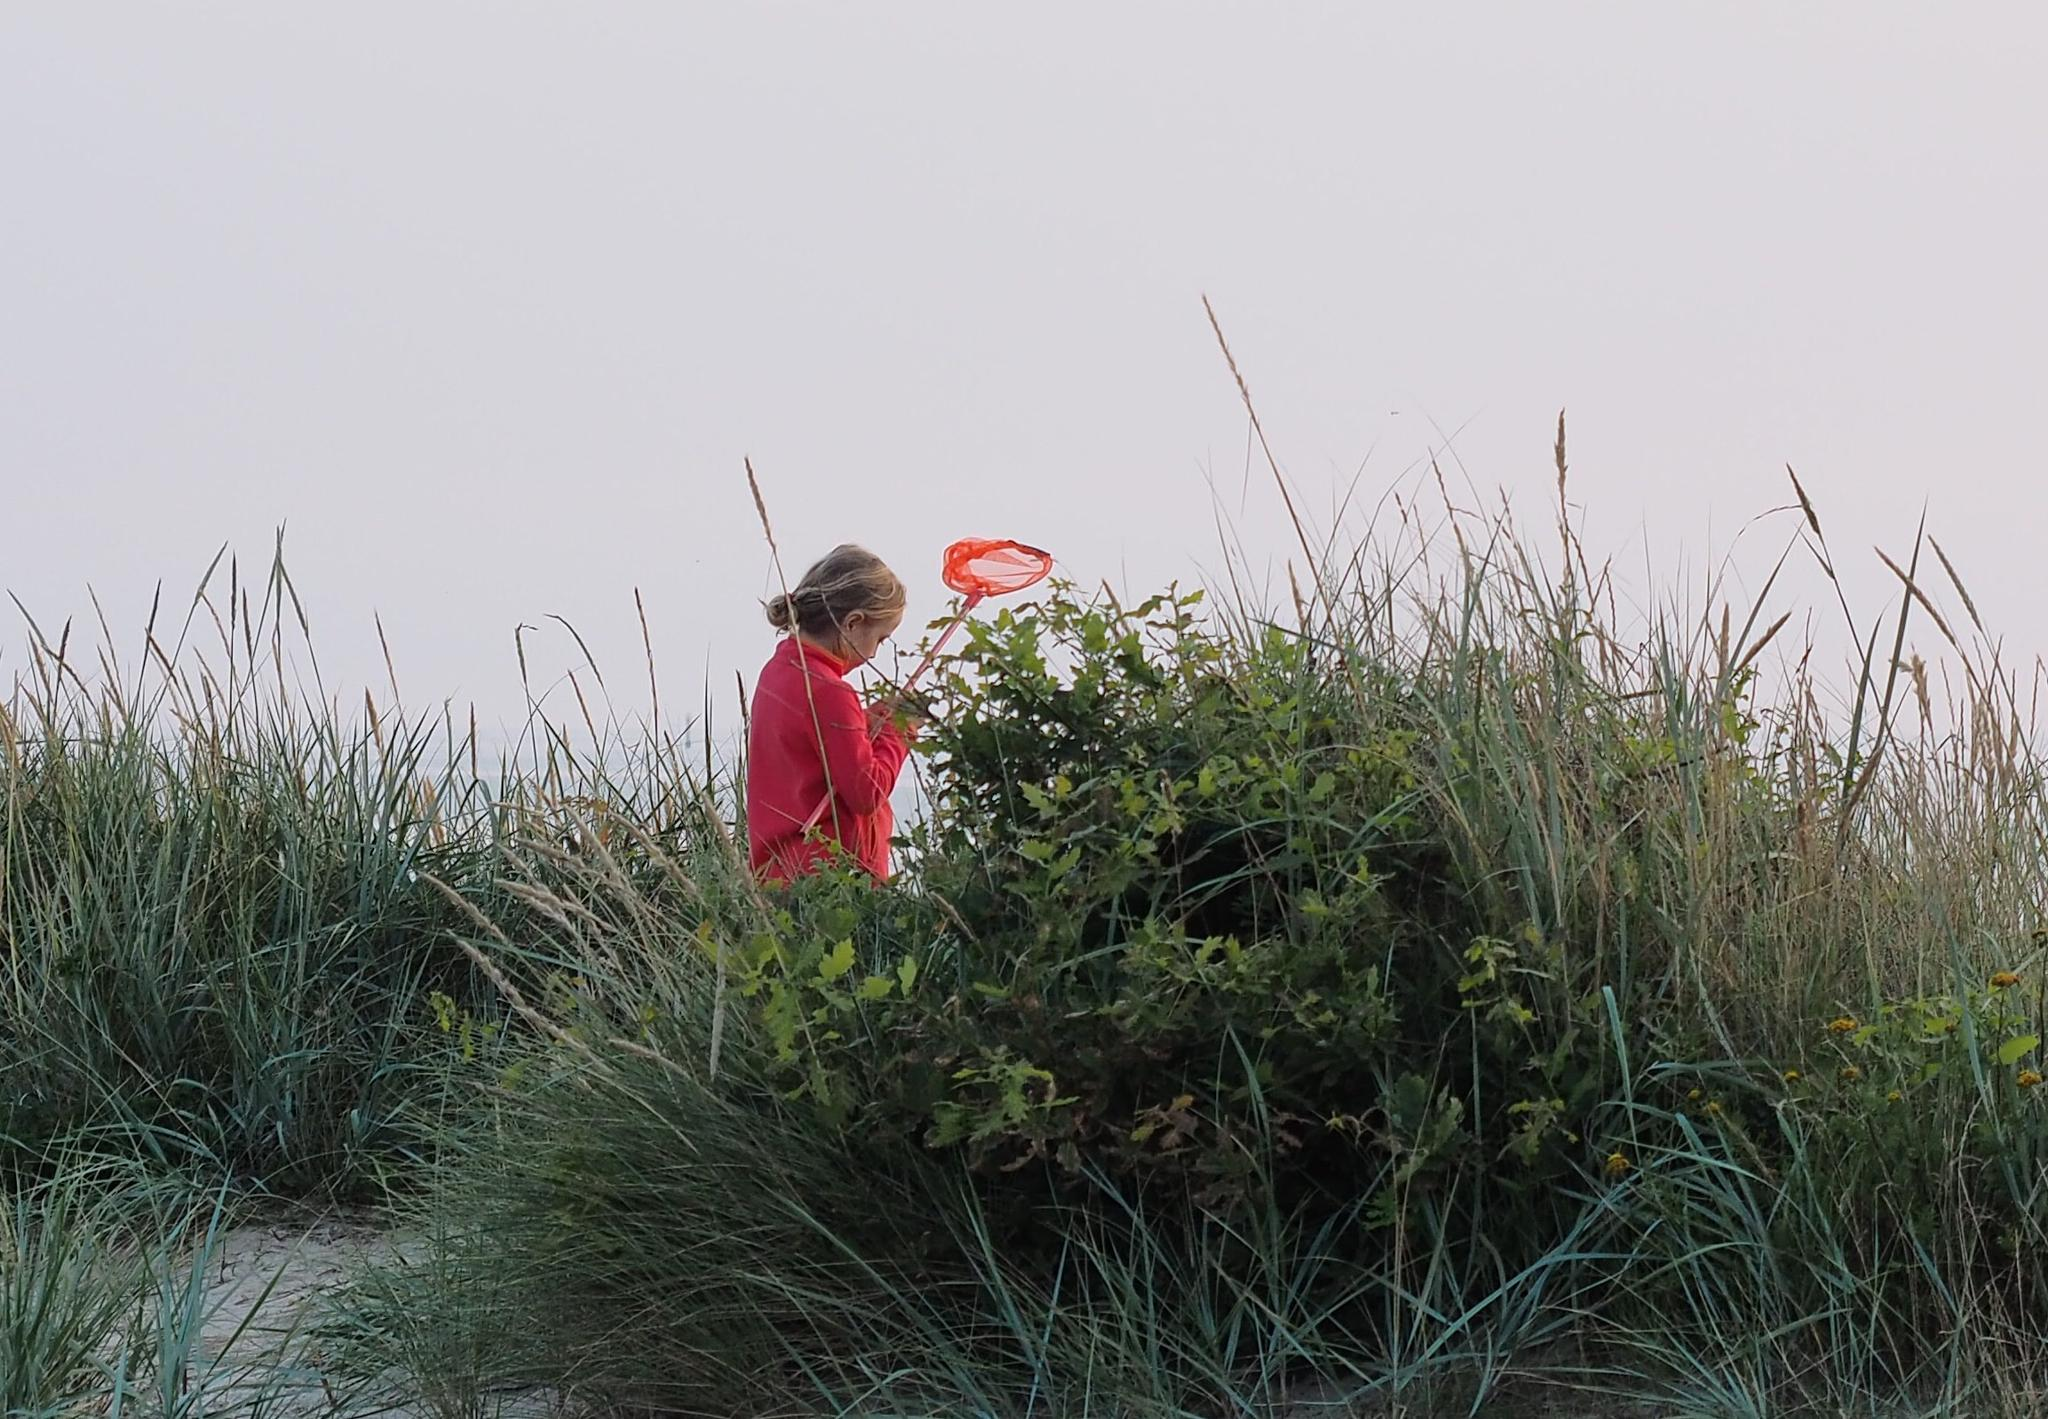 In the dunes: Young scientists catching ... by henningwaschk